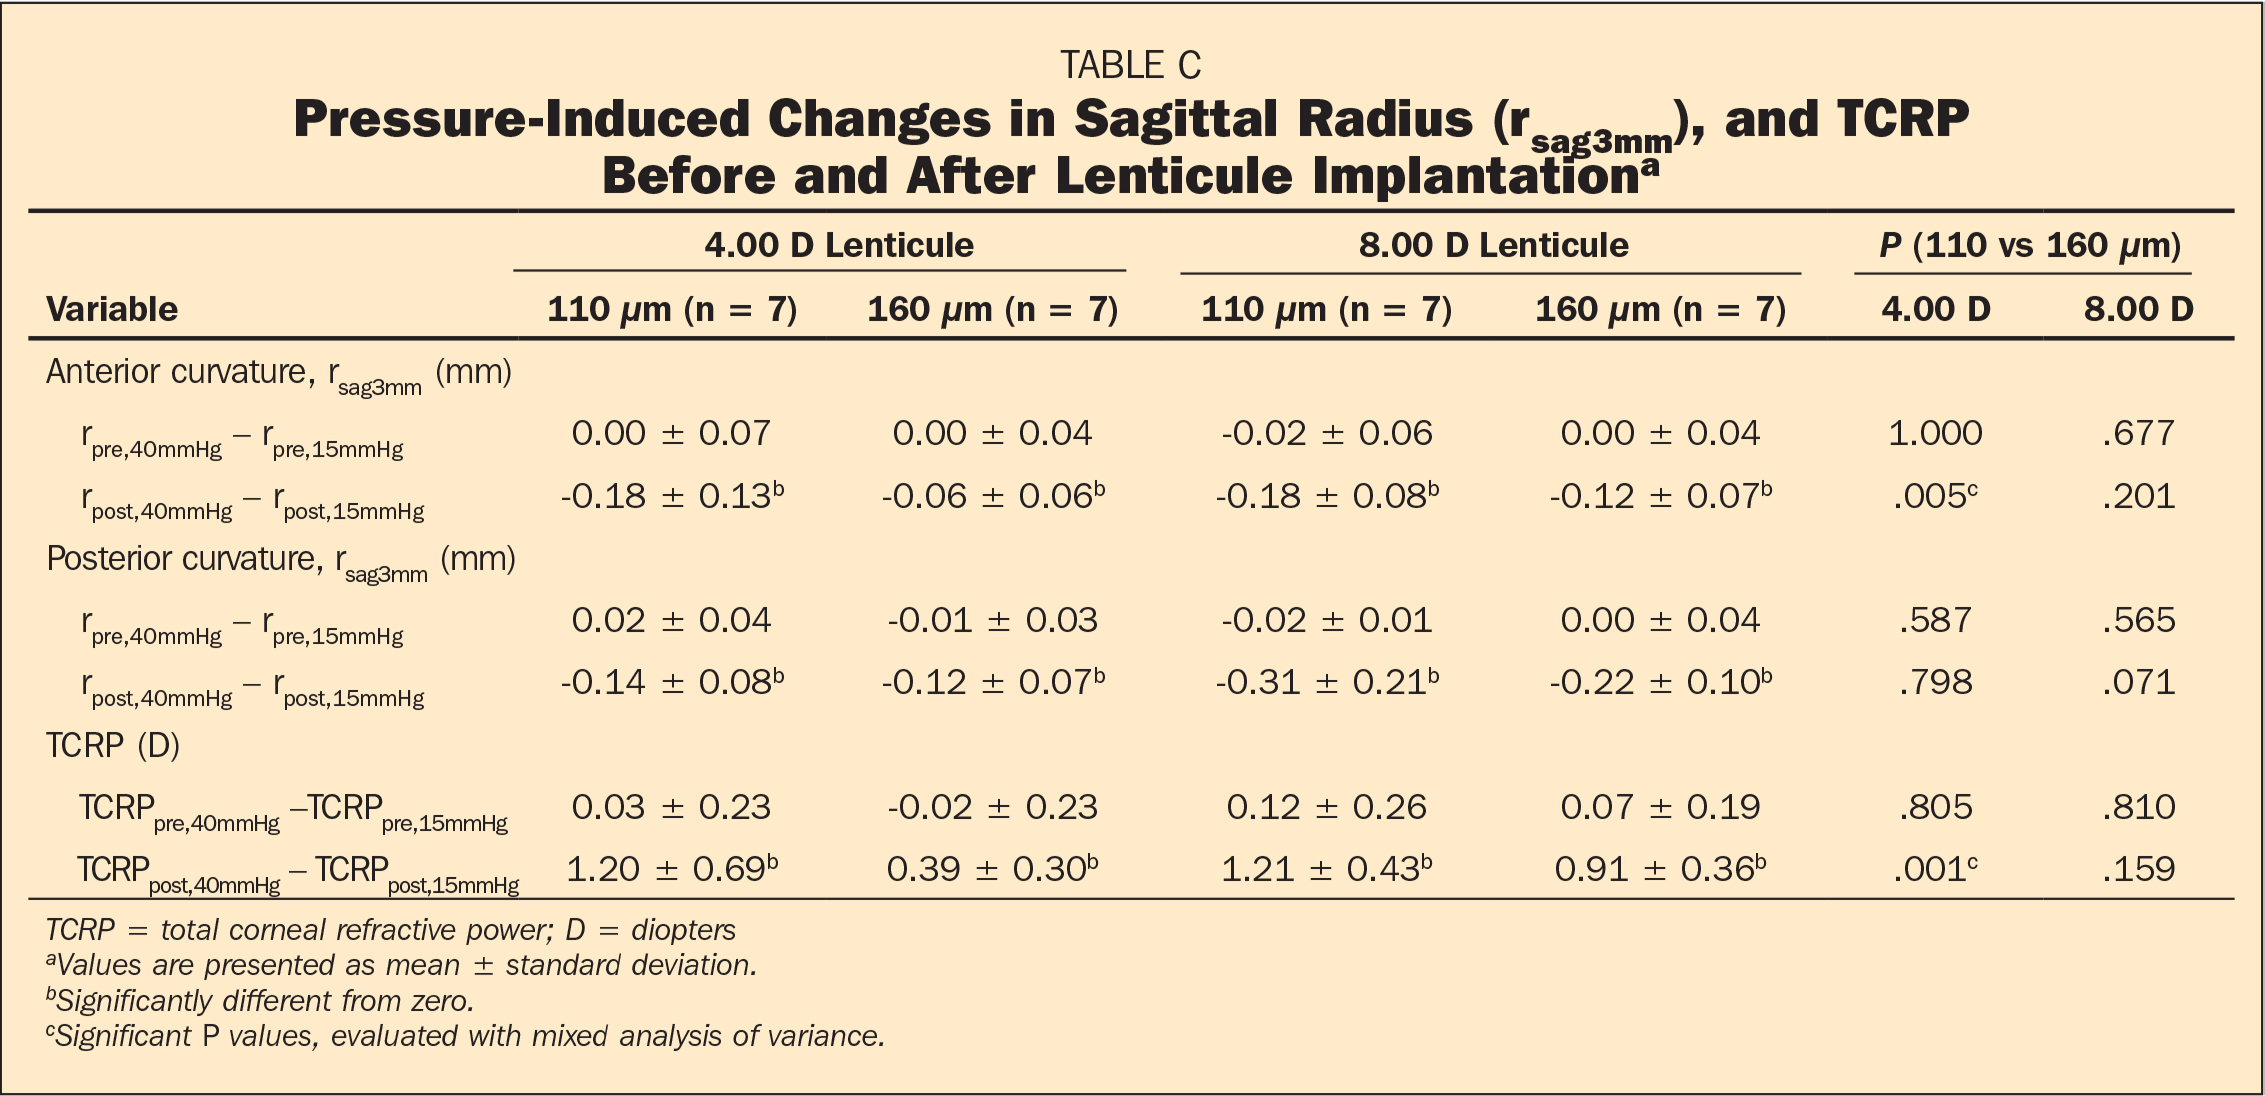 Pressure-Induced Changes in Sagittal Radius (rsag3mm), and TCRP Before and After Lenticule Implantationa